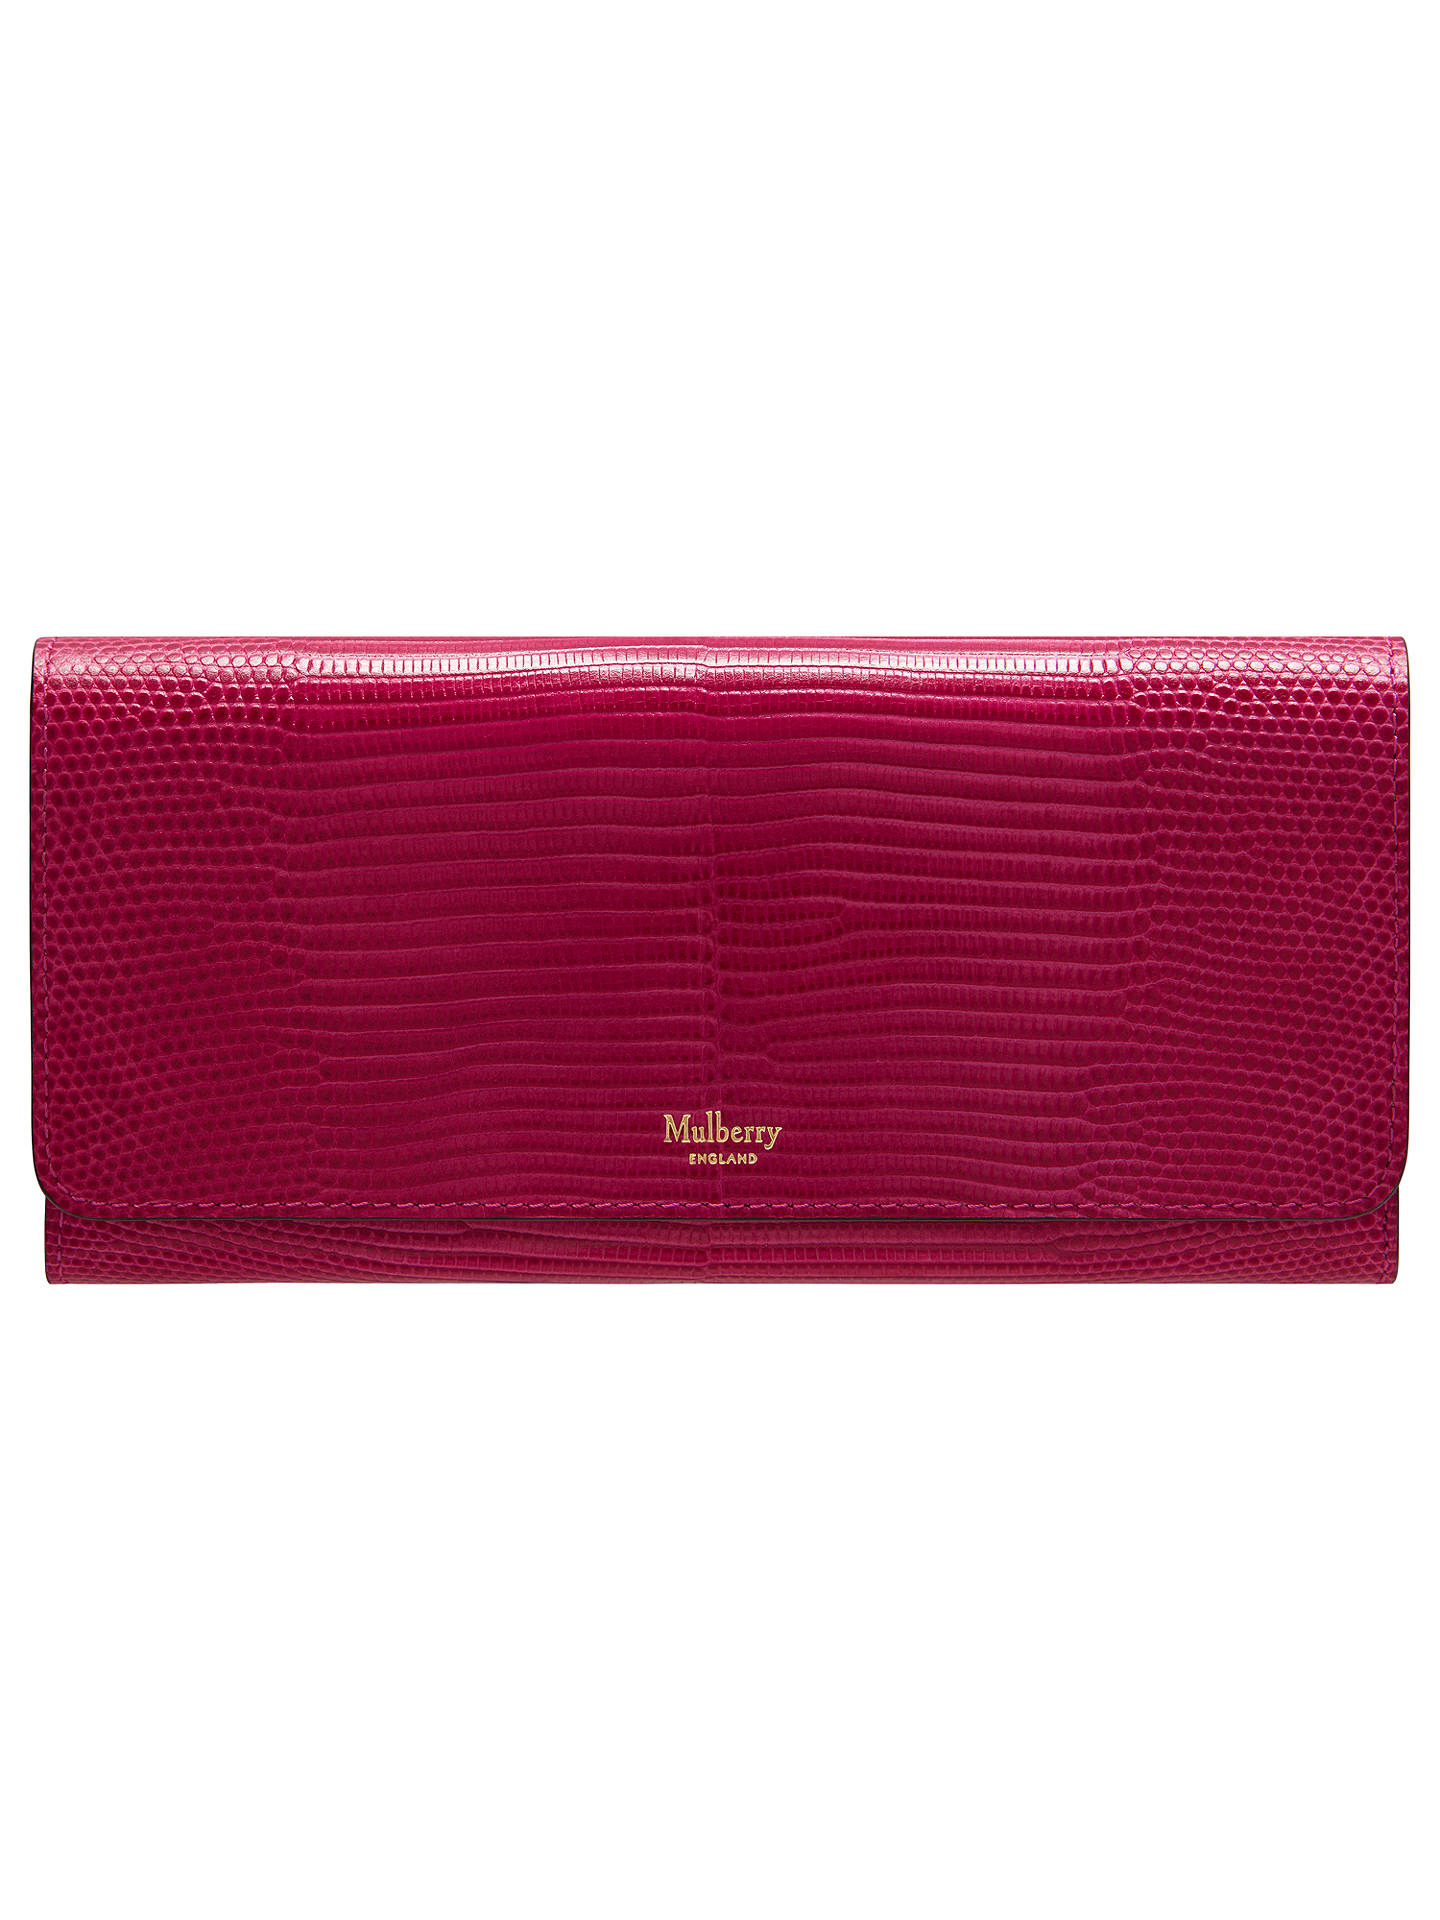 BuyMulberry Continental Leather Wallet, Deep Pink Online at johnlewis.com